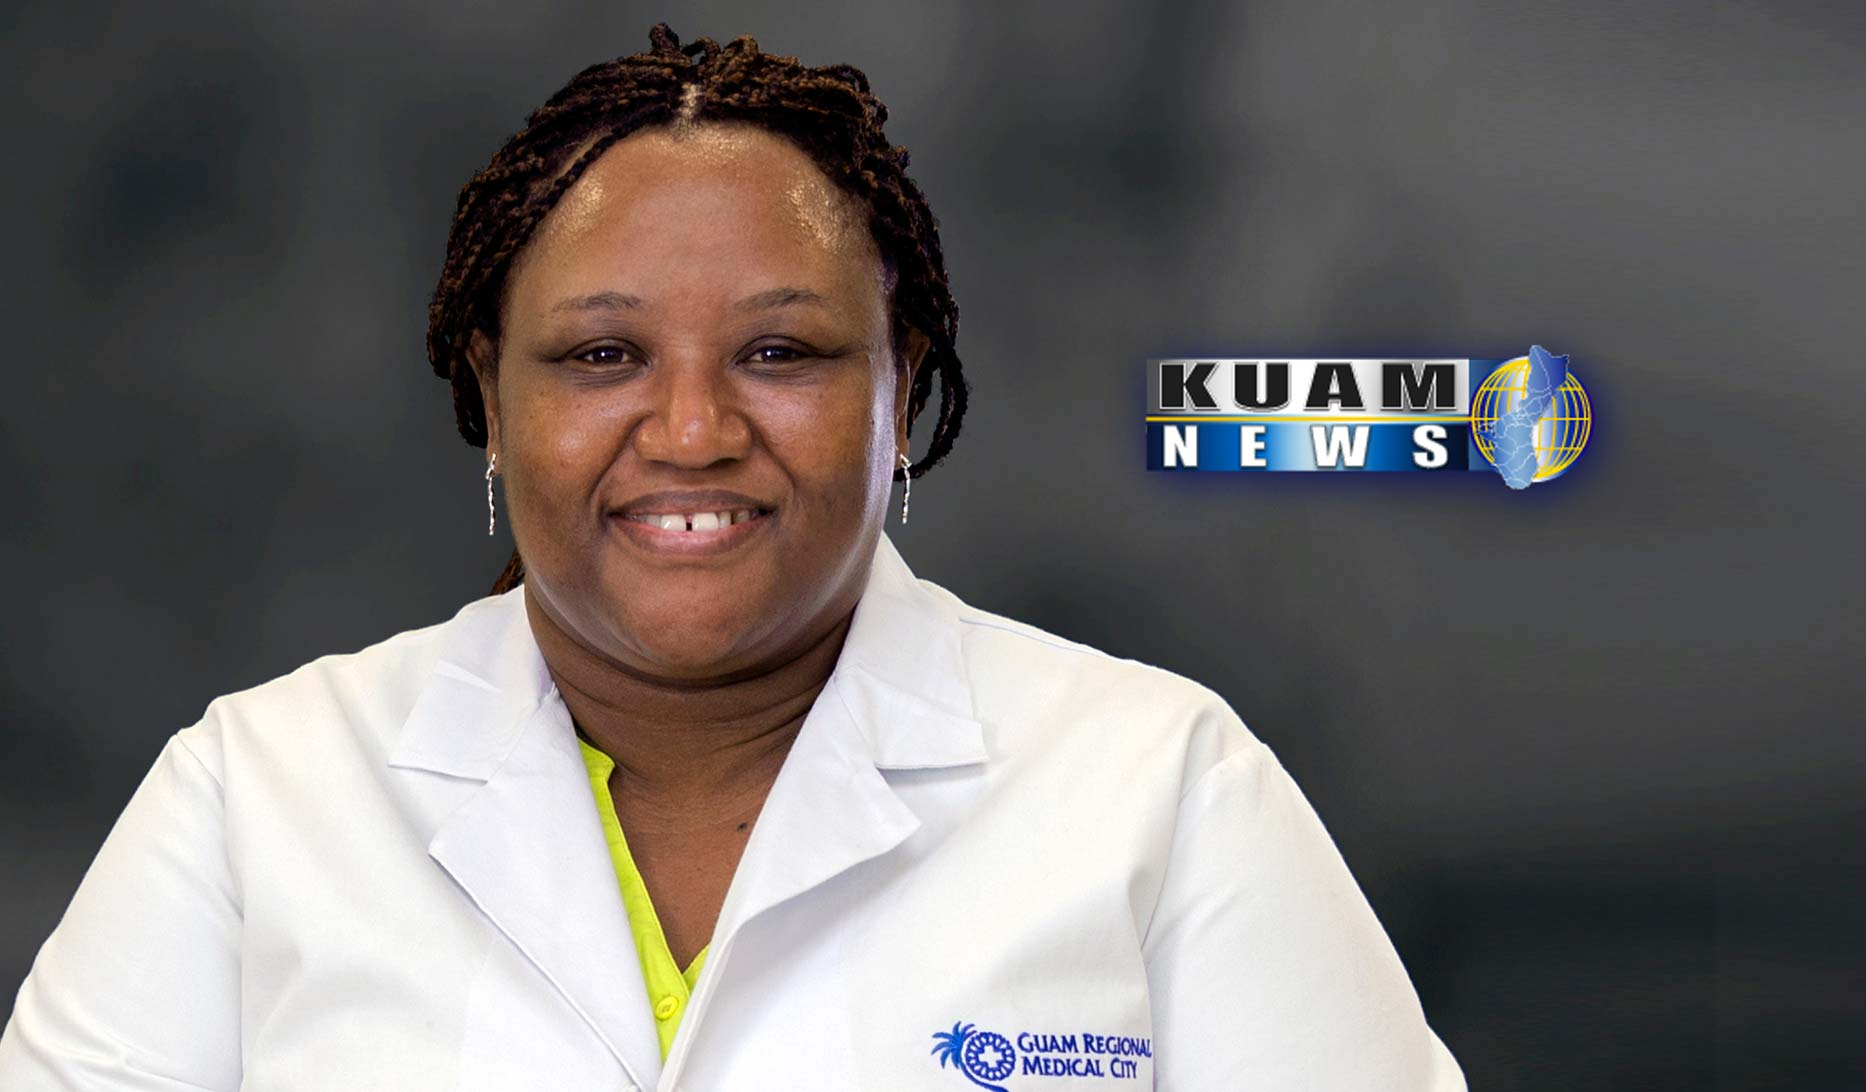 KUAM News Report – GRMC Deputy CMO Dr. Aku Agyeman talks about GRMC's emergency preparedness plan